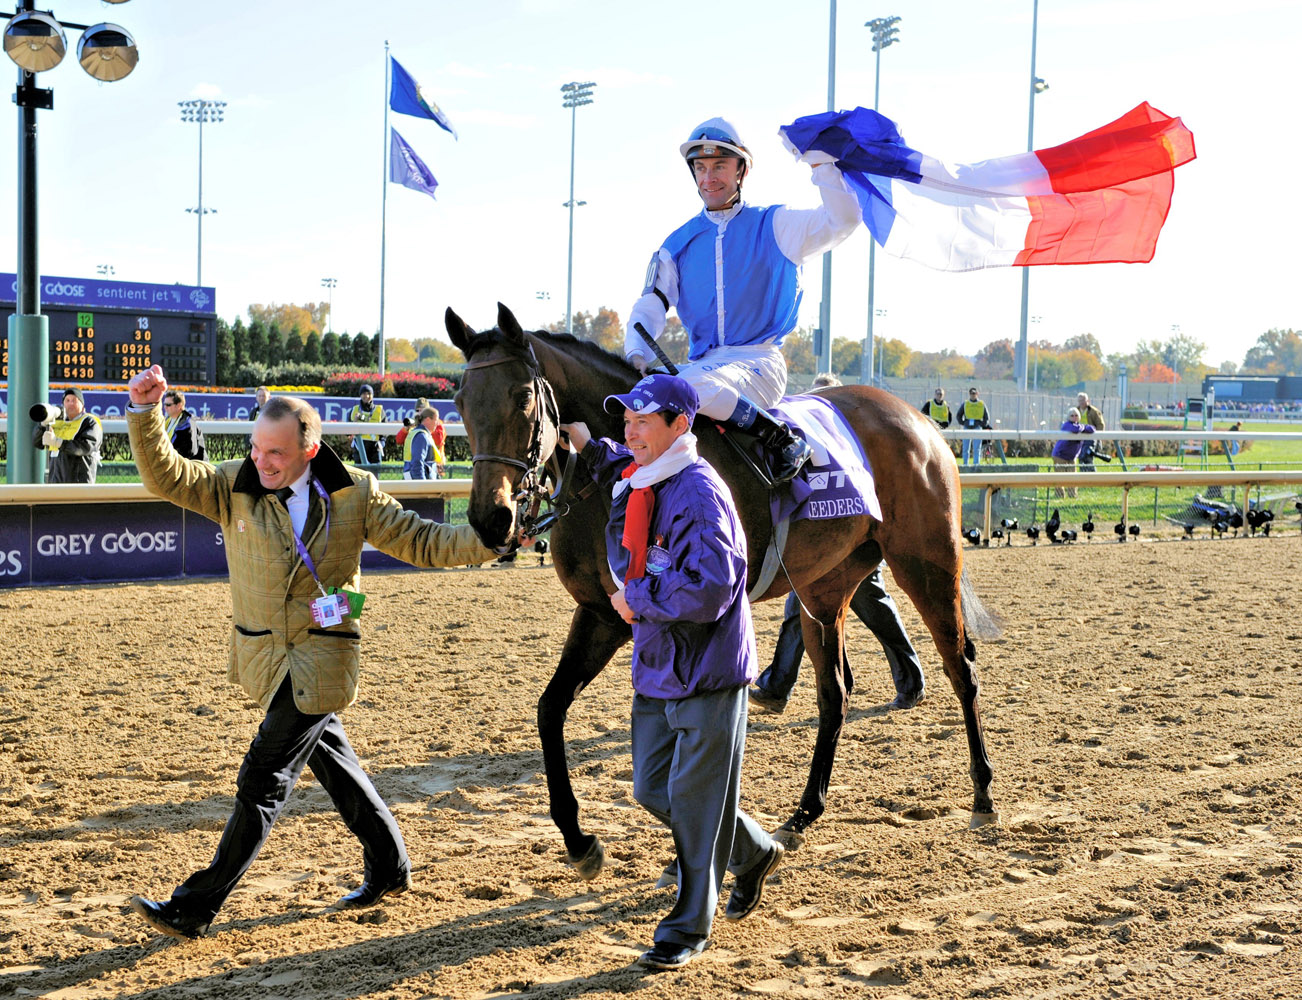 Goldikova and her connections celebrate her third consecutive Breeders' Cup Mile victory at Churchill Downs in November 2010 (Breeders' Cup Photo)